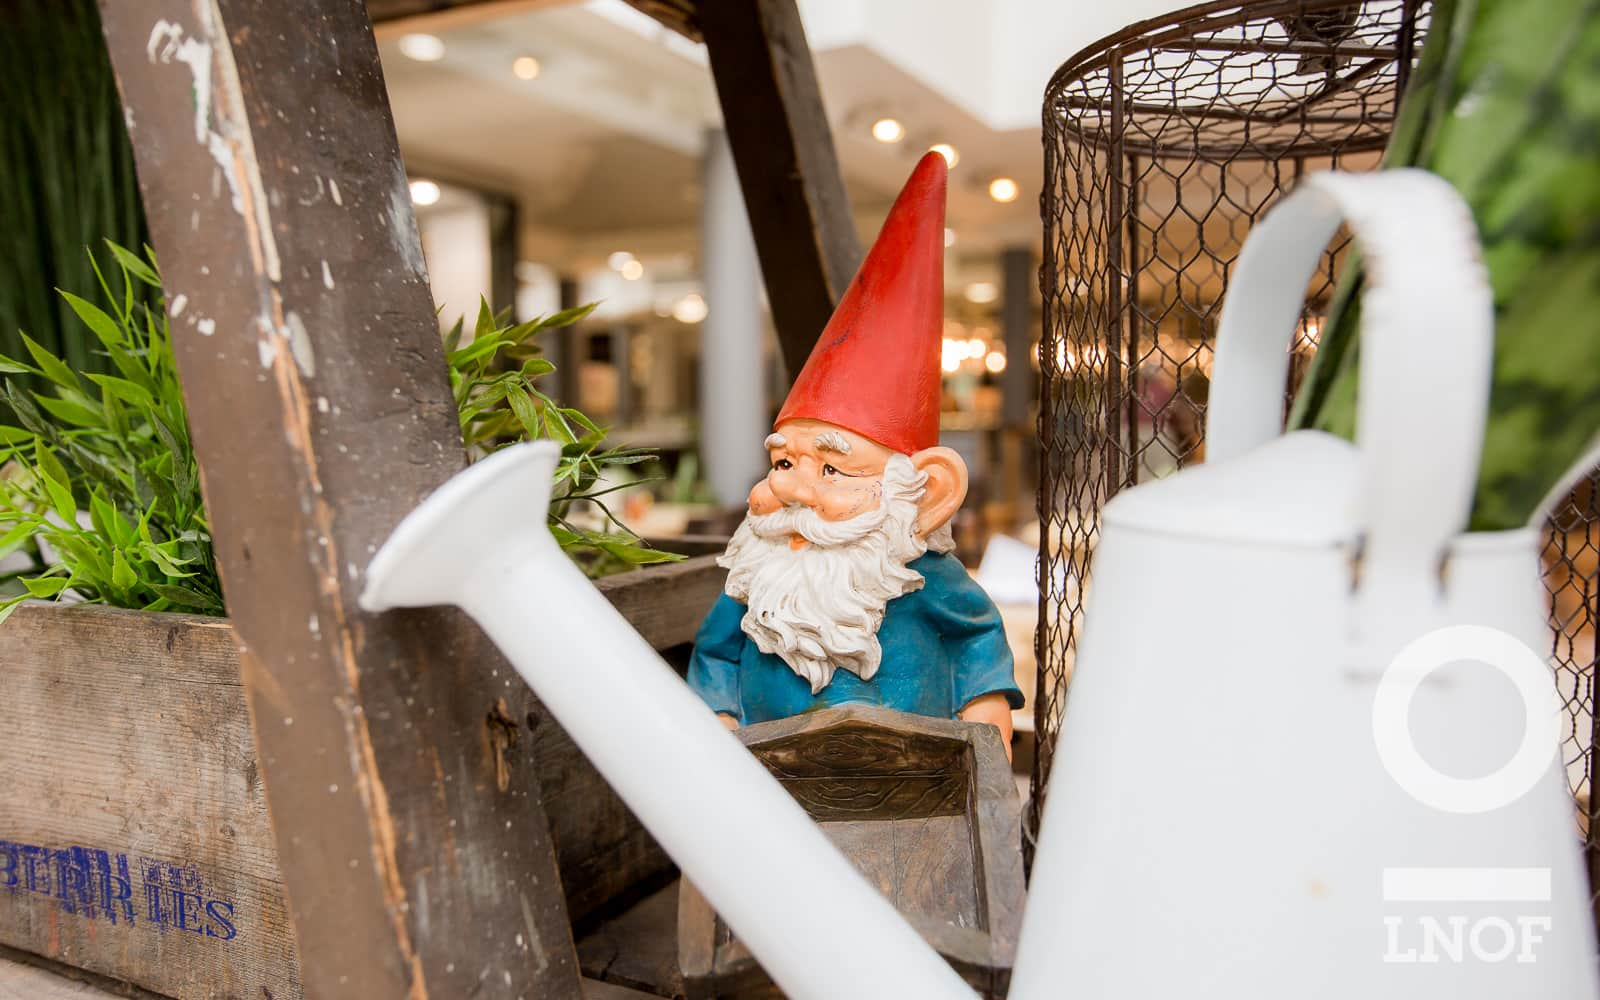 Garden gnome and watering can at Garden Kitchen in Newcastle upon Tyne